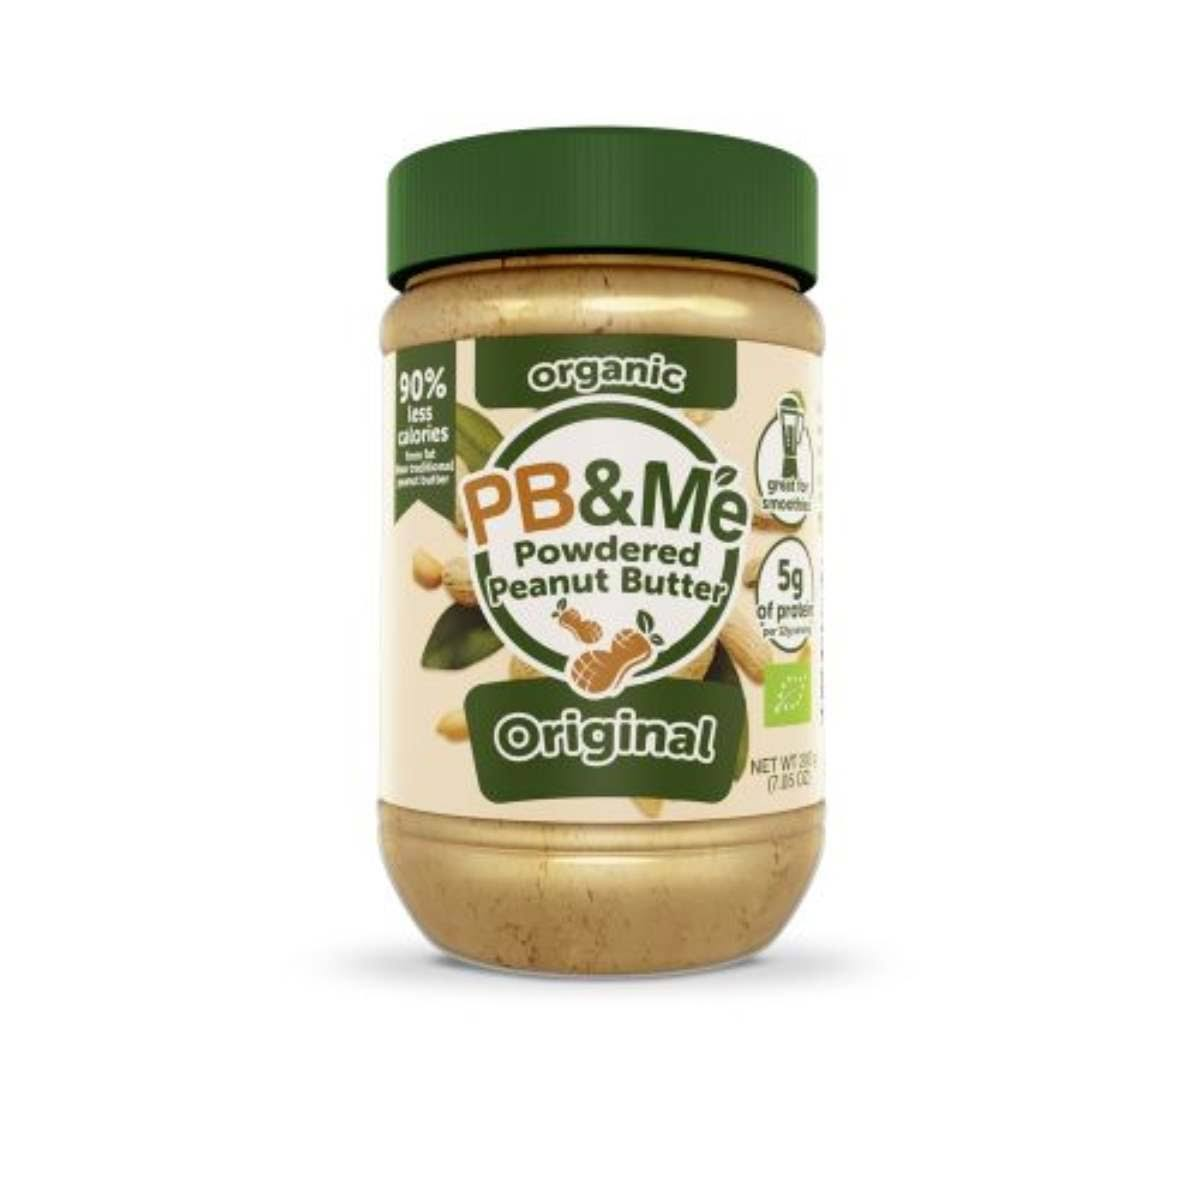 PB and Me Organic Original Powdered Peanut Butter - 200g